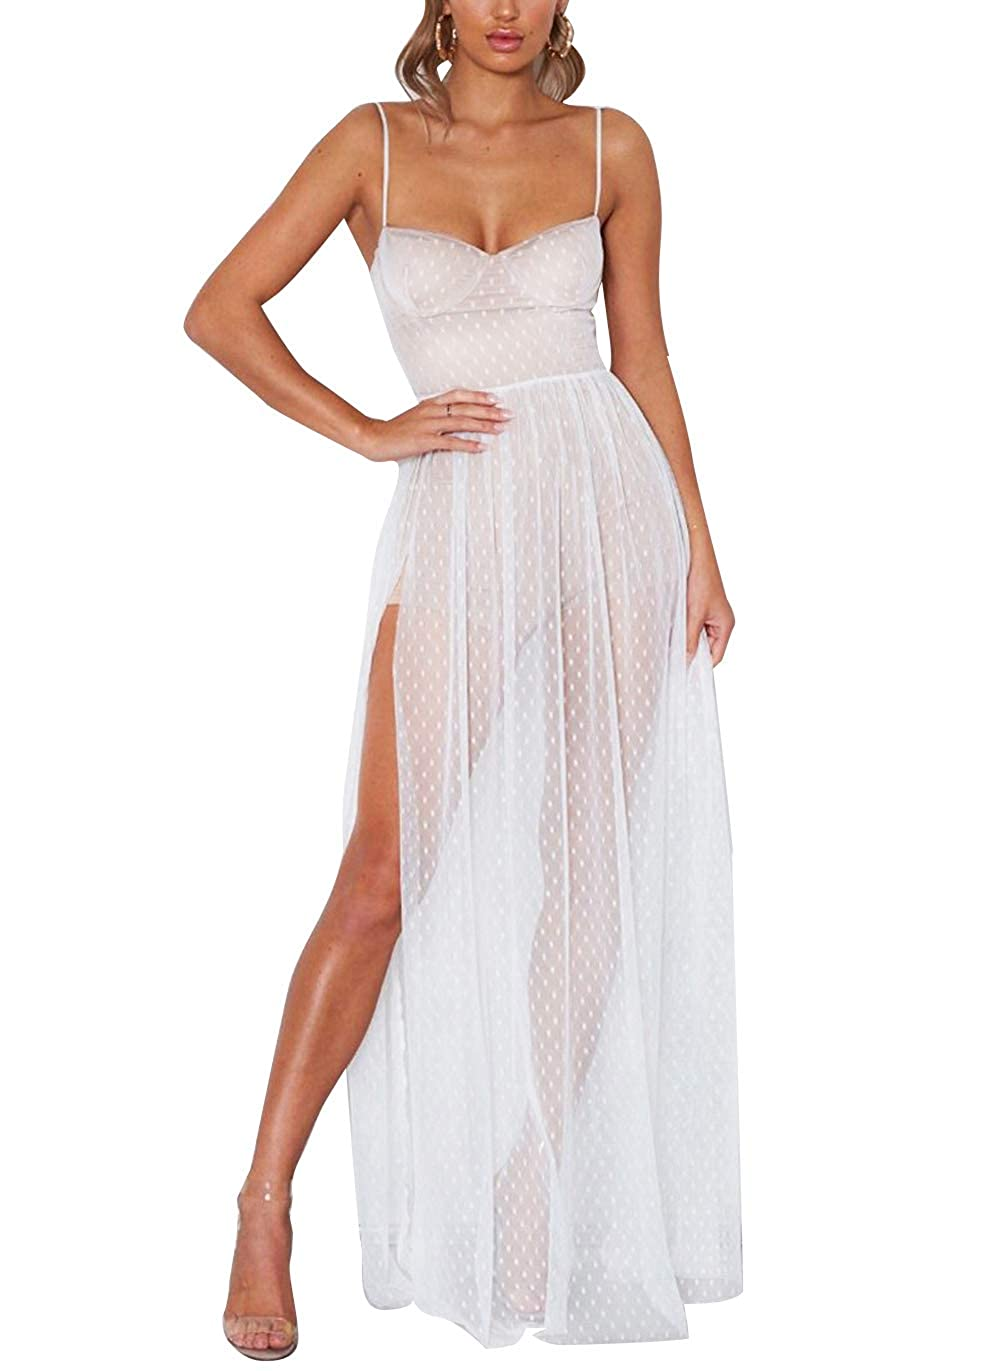 Carolilly Damen Mode Streetwear Transparent Kleid Party Clubwear Unterkleid Bikini Cover up